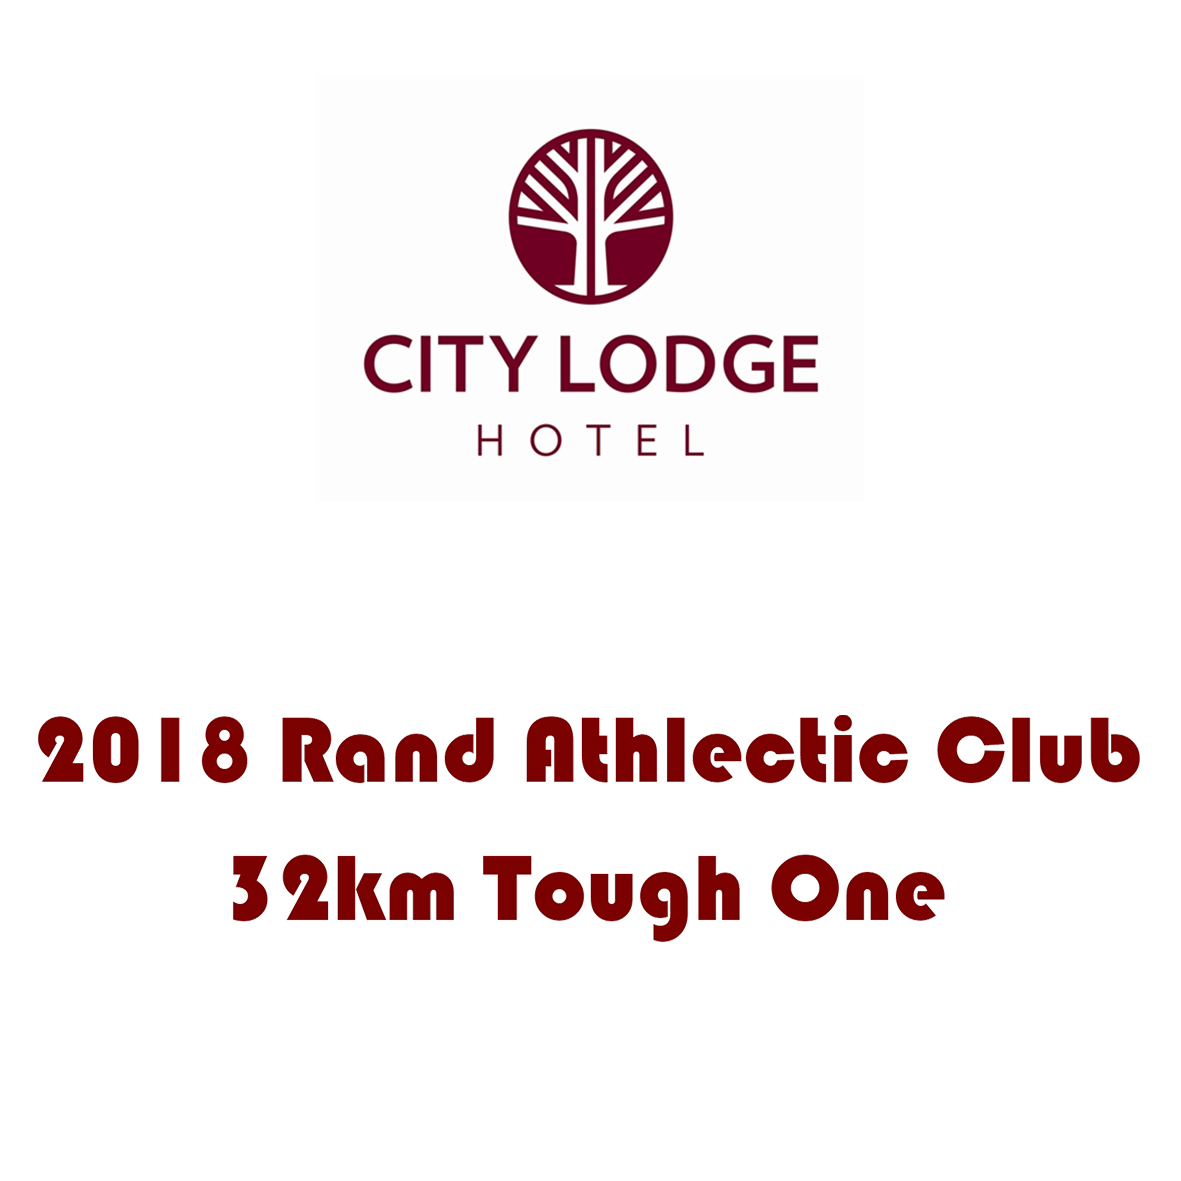 City Lodge RAC 32km Tough One